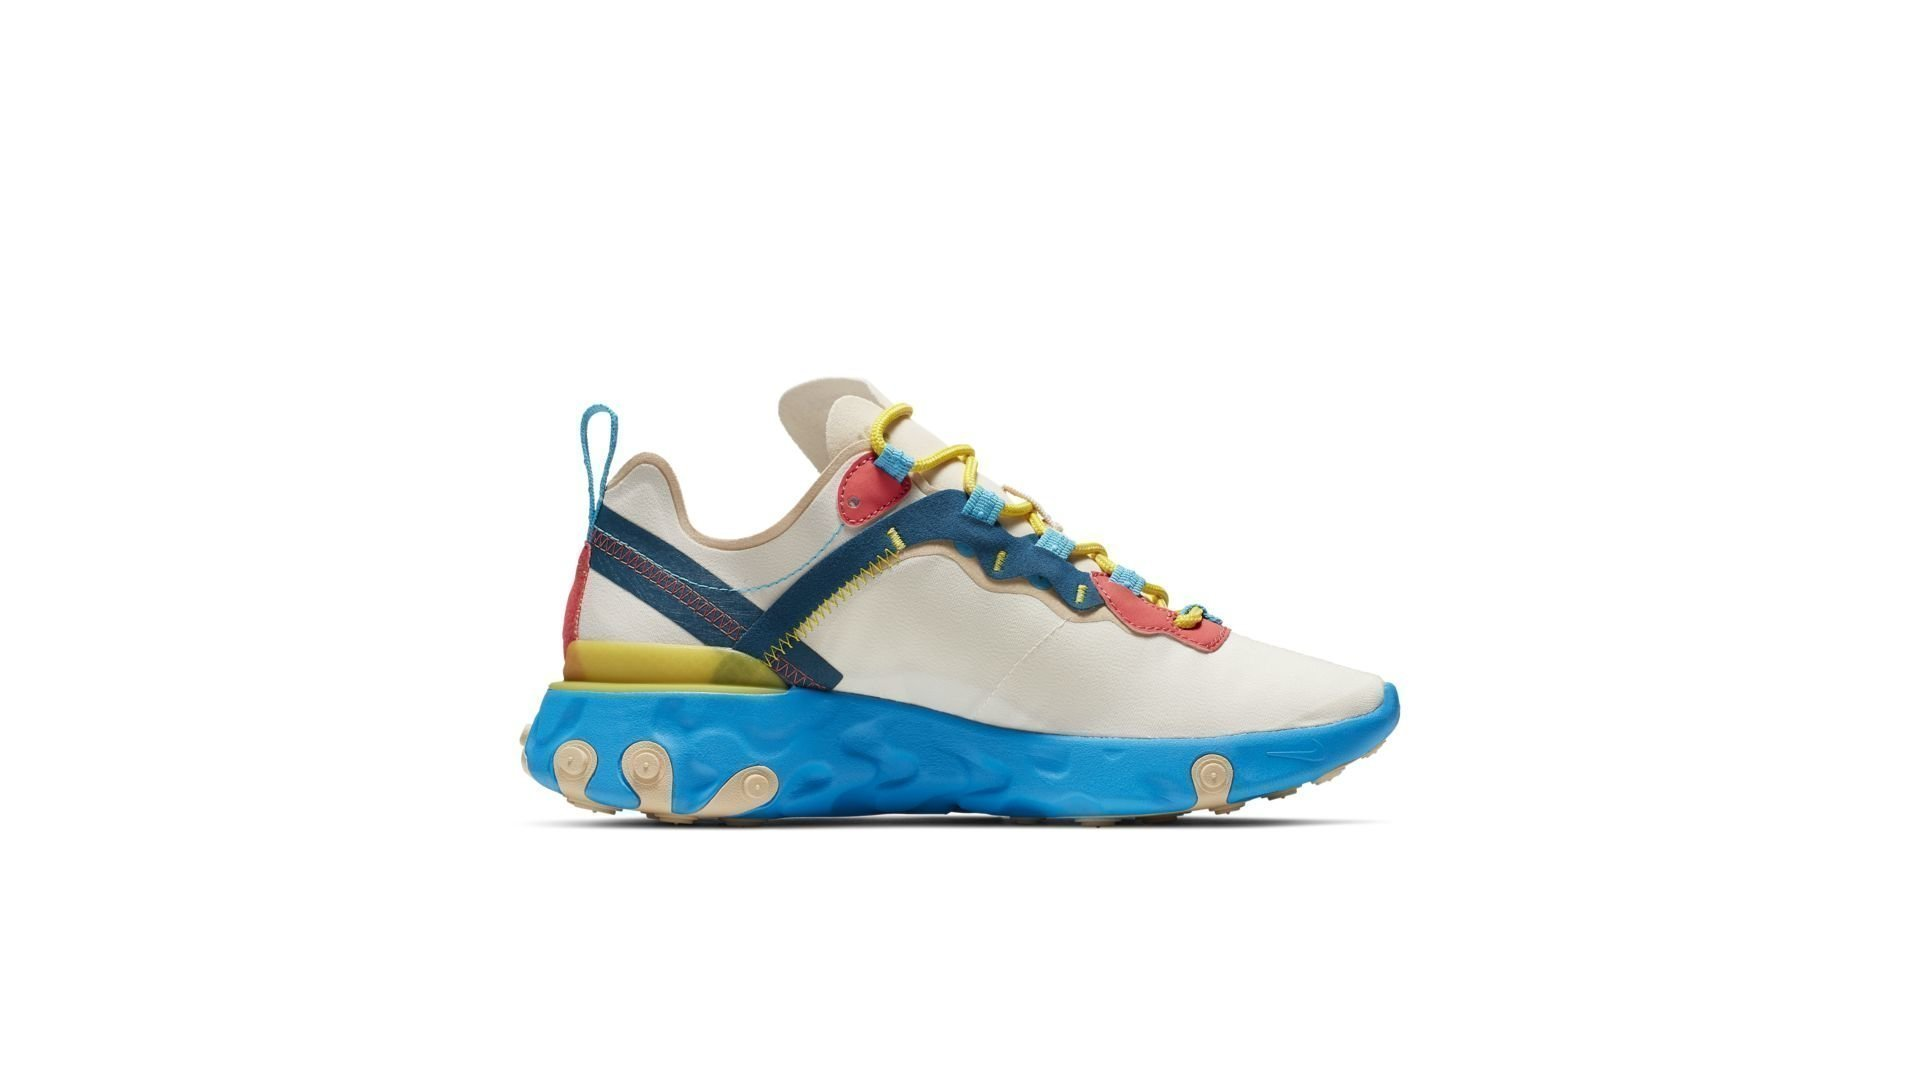 Nike WMNS React Element 55 'Blue Sole' (BQ2728-201)